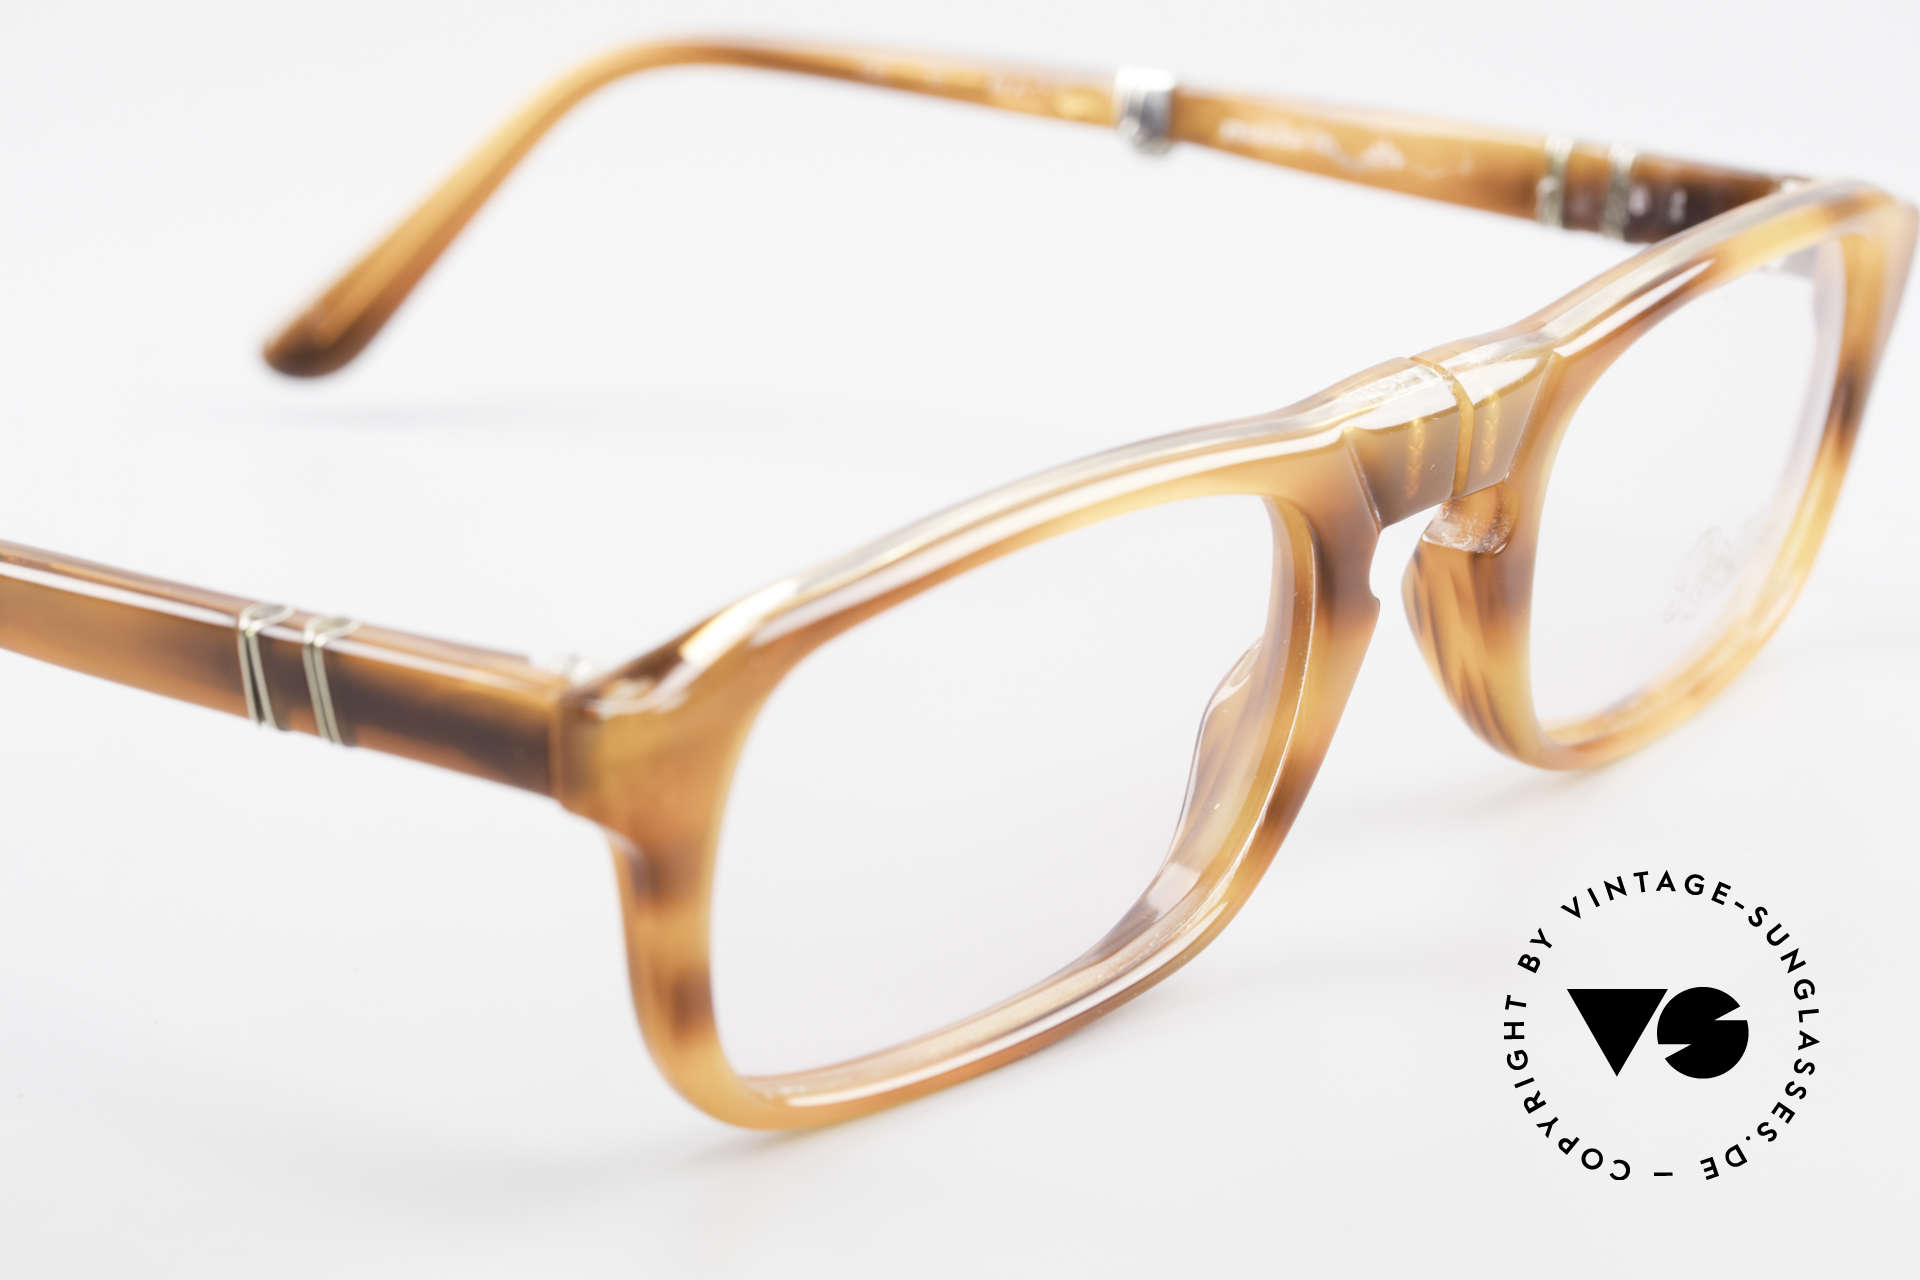 Persol Ratti 813 Folding Folding Reading Eyeglasses, NO RETRO GLASSES, but a min. 40 years old ORIGINAL, Made for Men